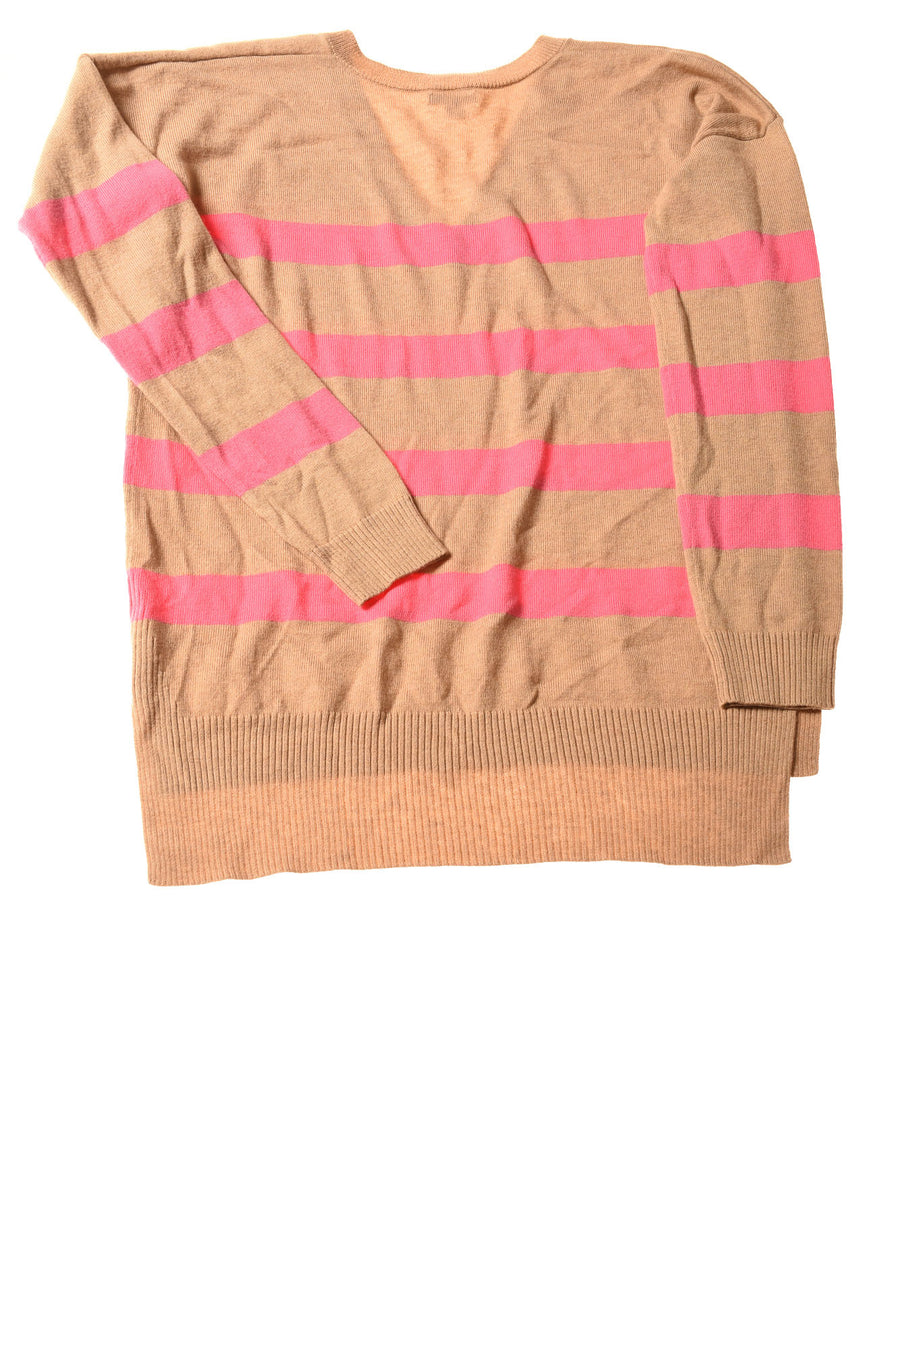 Women's Sweater By Gap